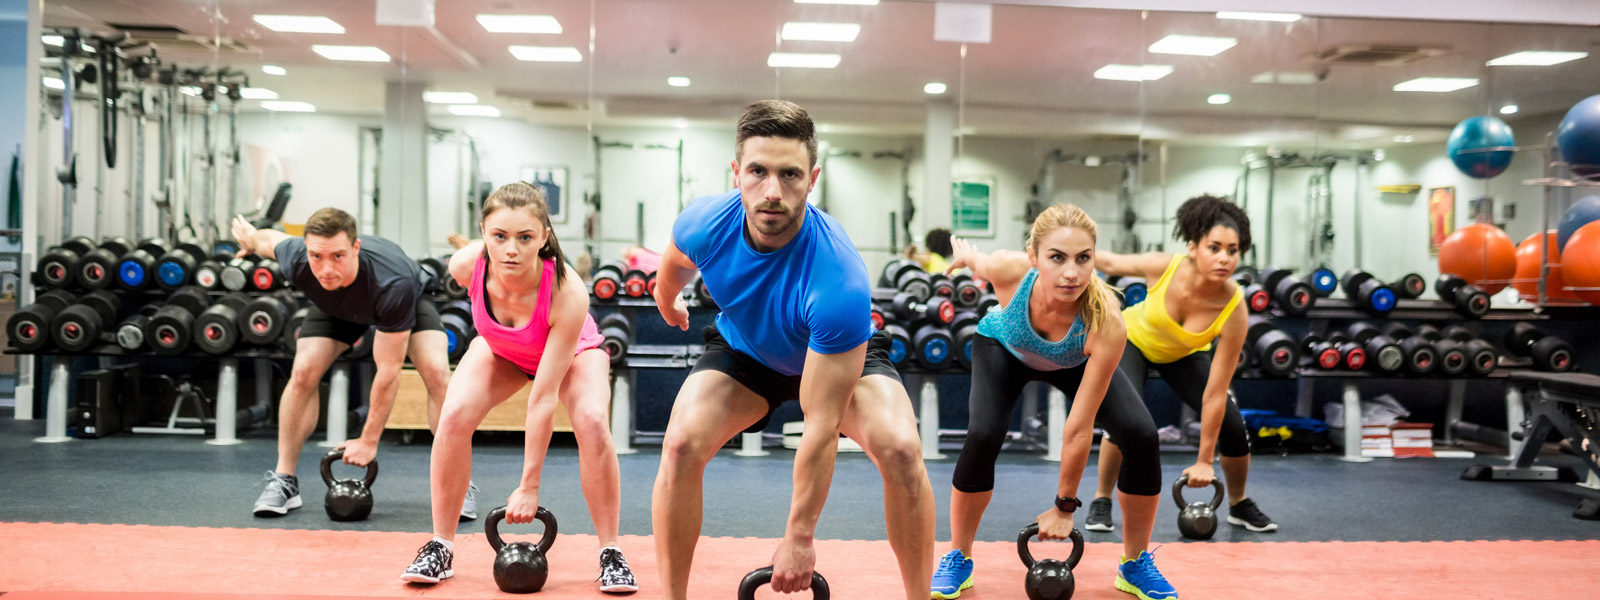 Individual vs. Group Exercise: Which is Better?